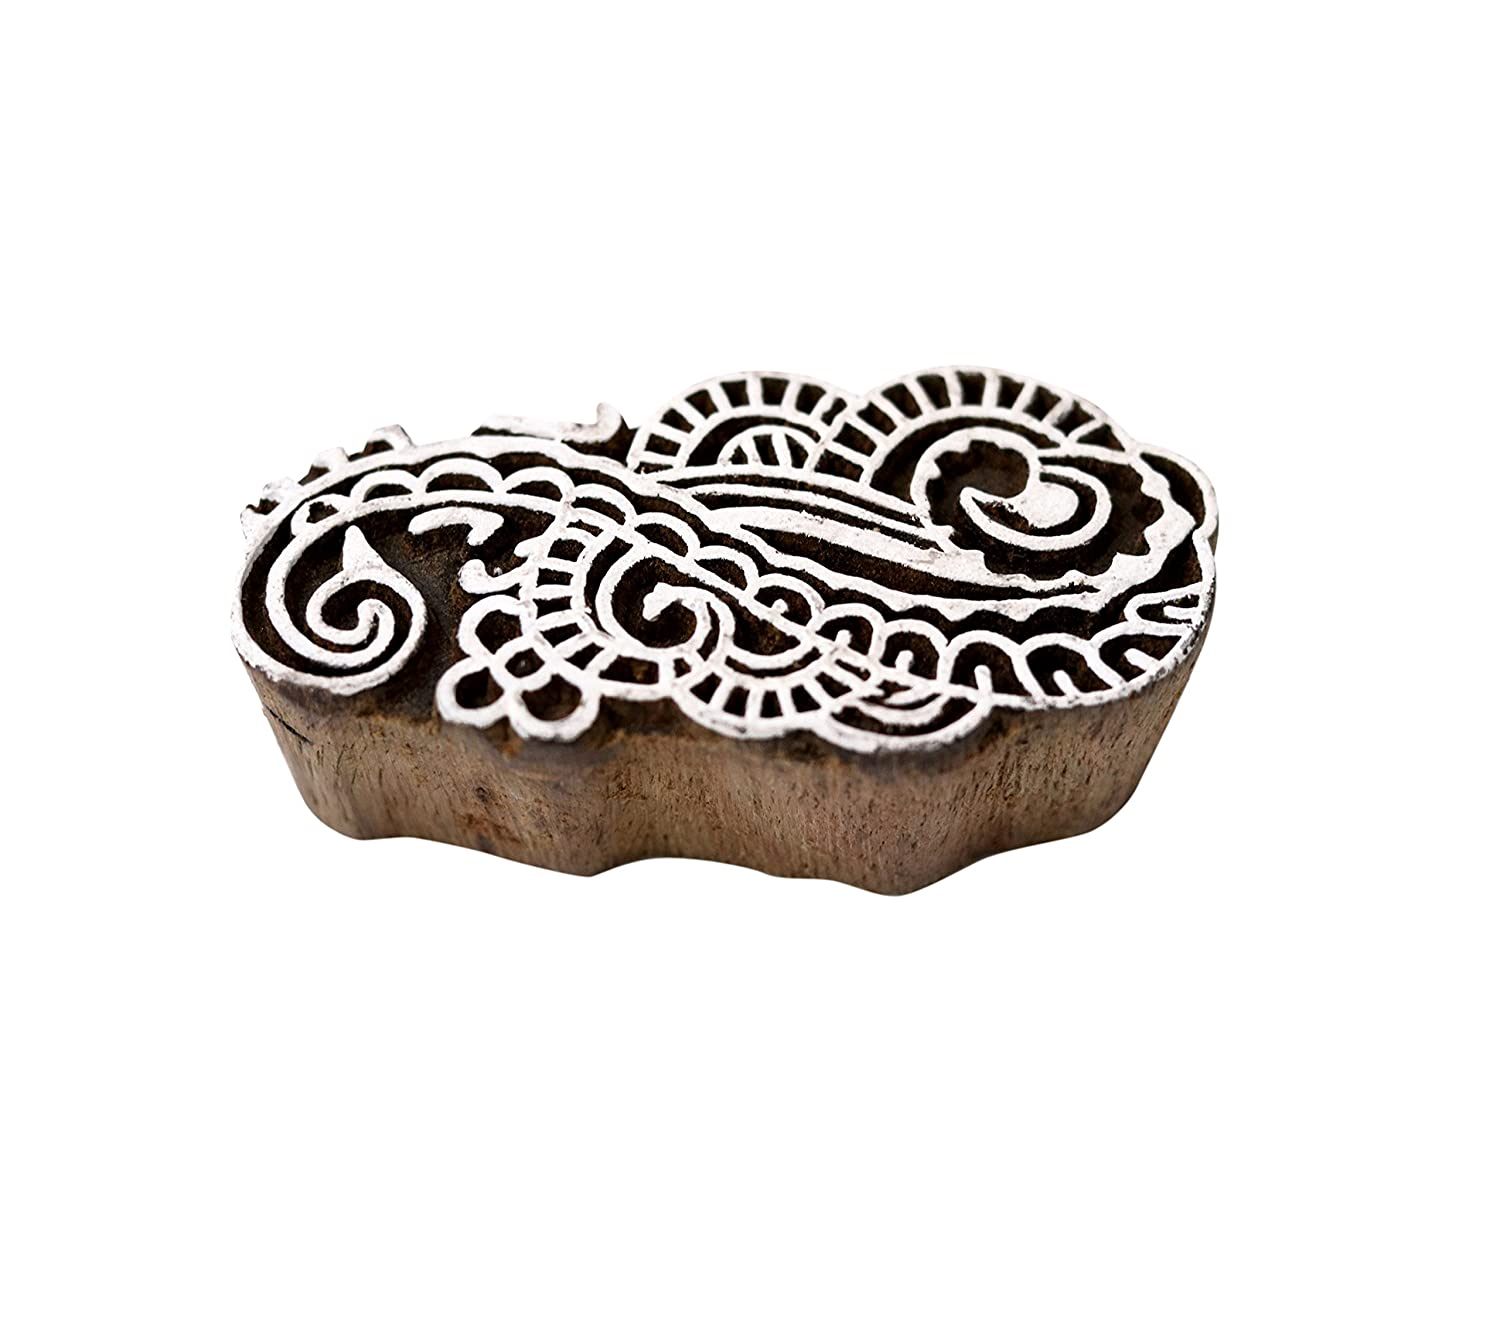 Hashcart Baren for Block Printing Stamps//Wooden Stamping Block//Handcarved Designer Craft Printing Pattern for Saree Border,Henna//Textile Printing,Scrapbooking,Pottery Crafts /& Wall Painting,Set of 5